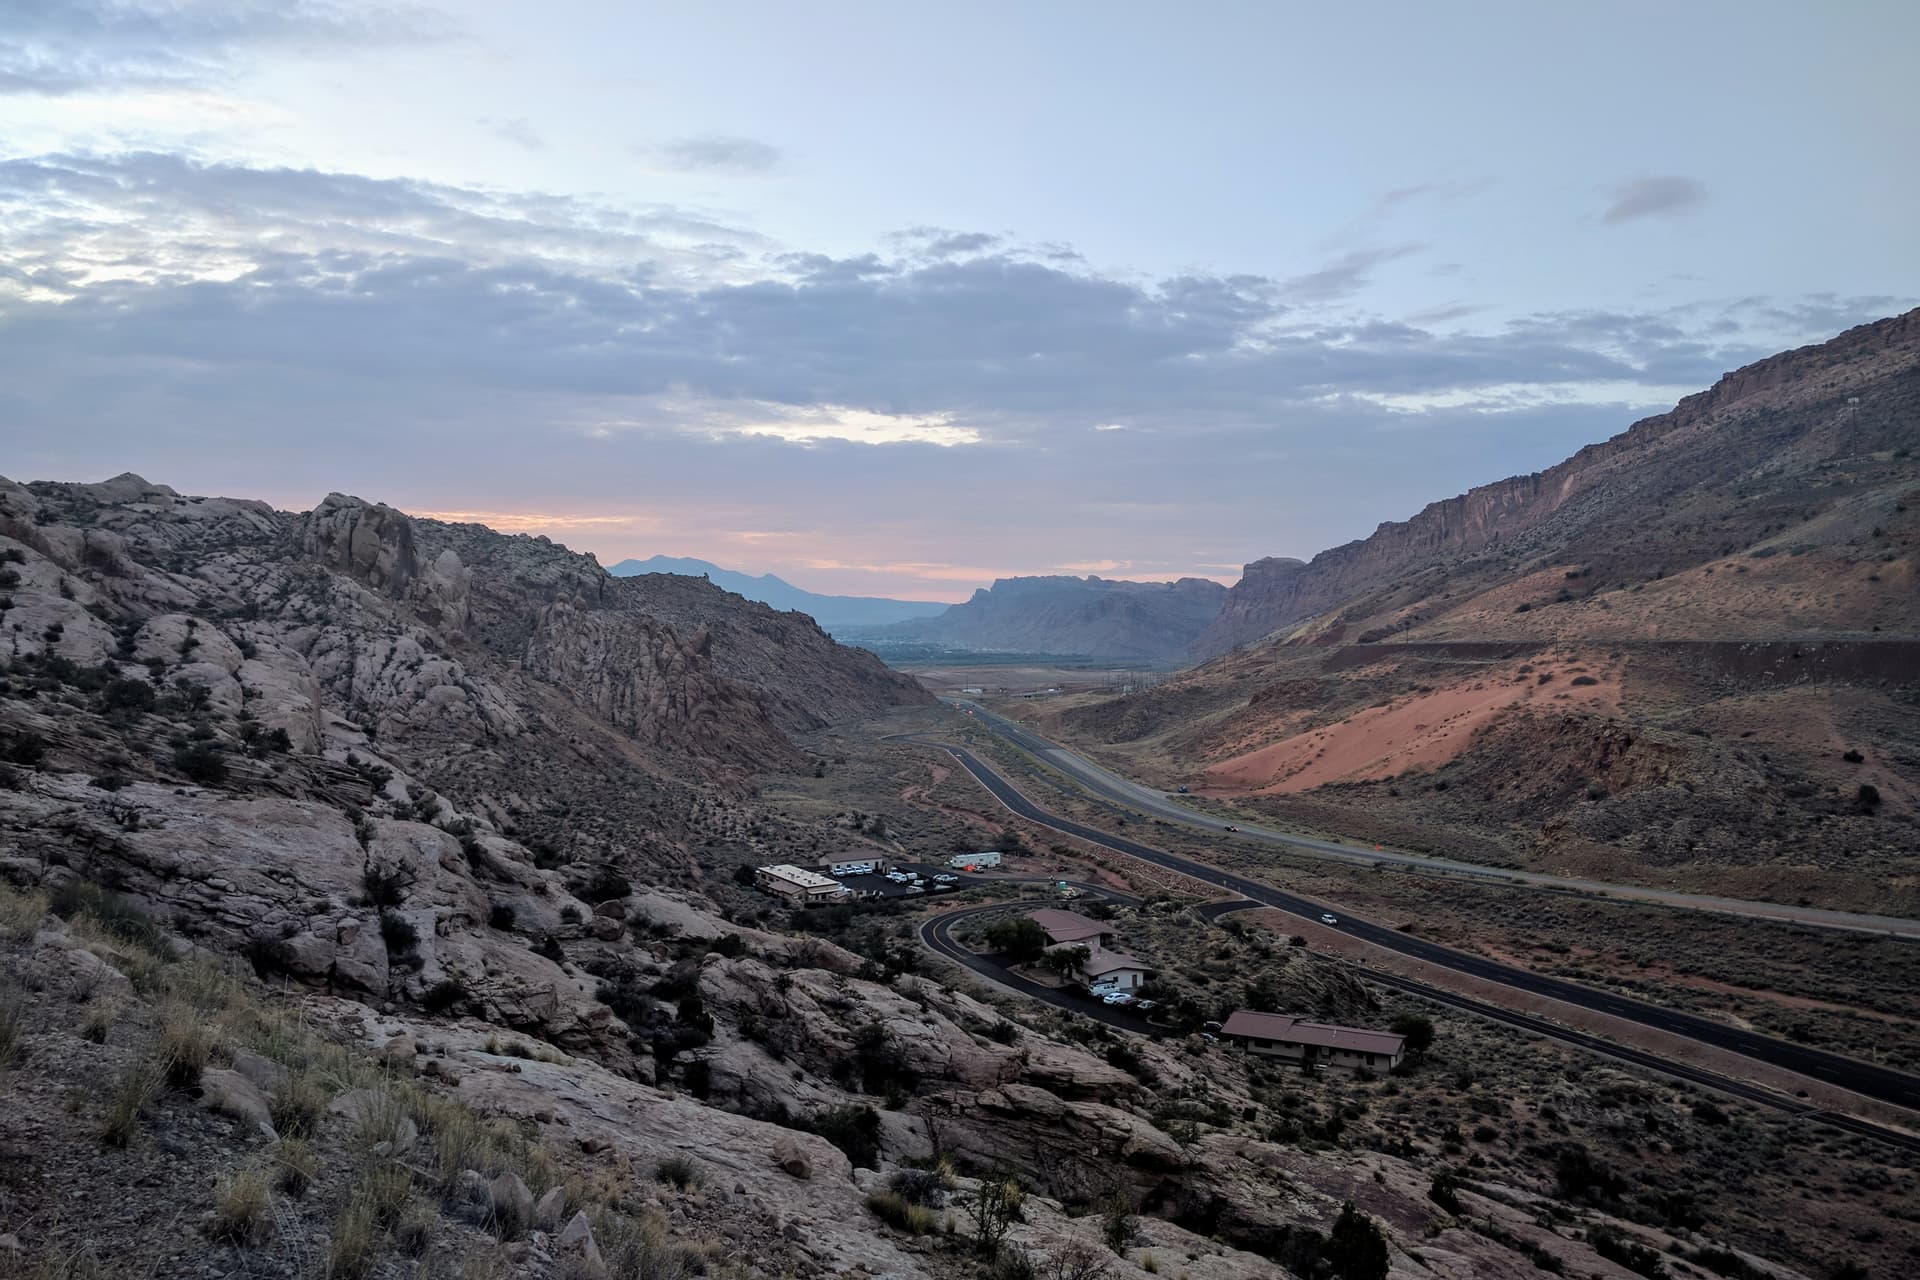 Looking back towards the Arches National Park visitors' center and the main road into Moab just after dawn.